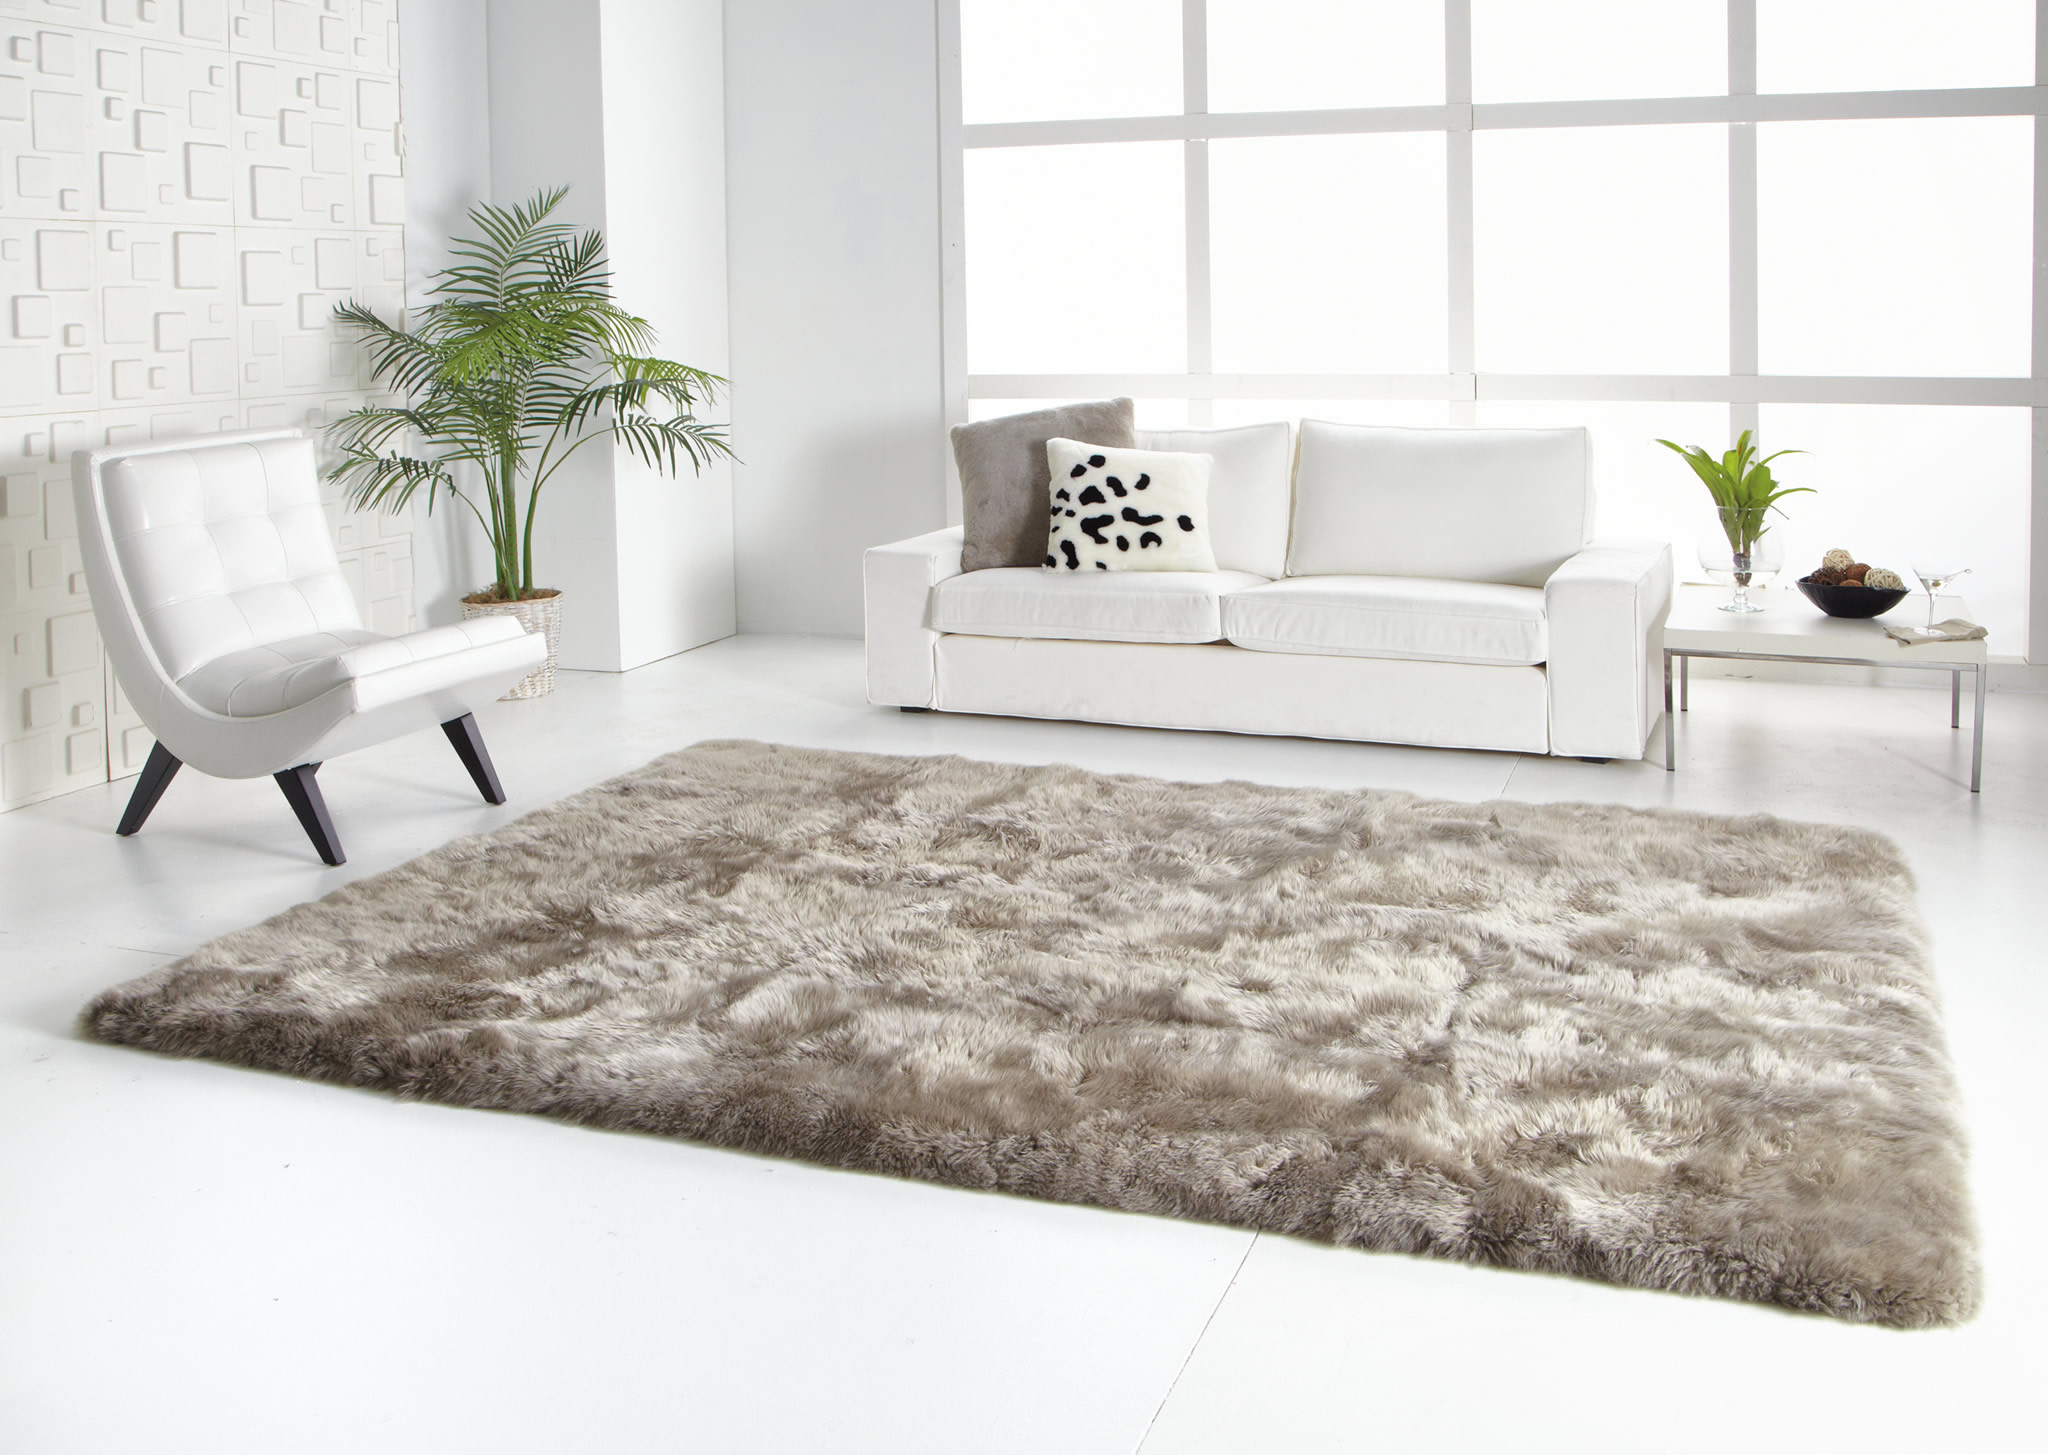 Fur Rug White | Fur Rug | Animal Fur Rugs